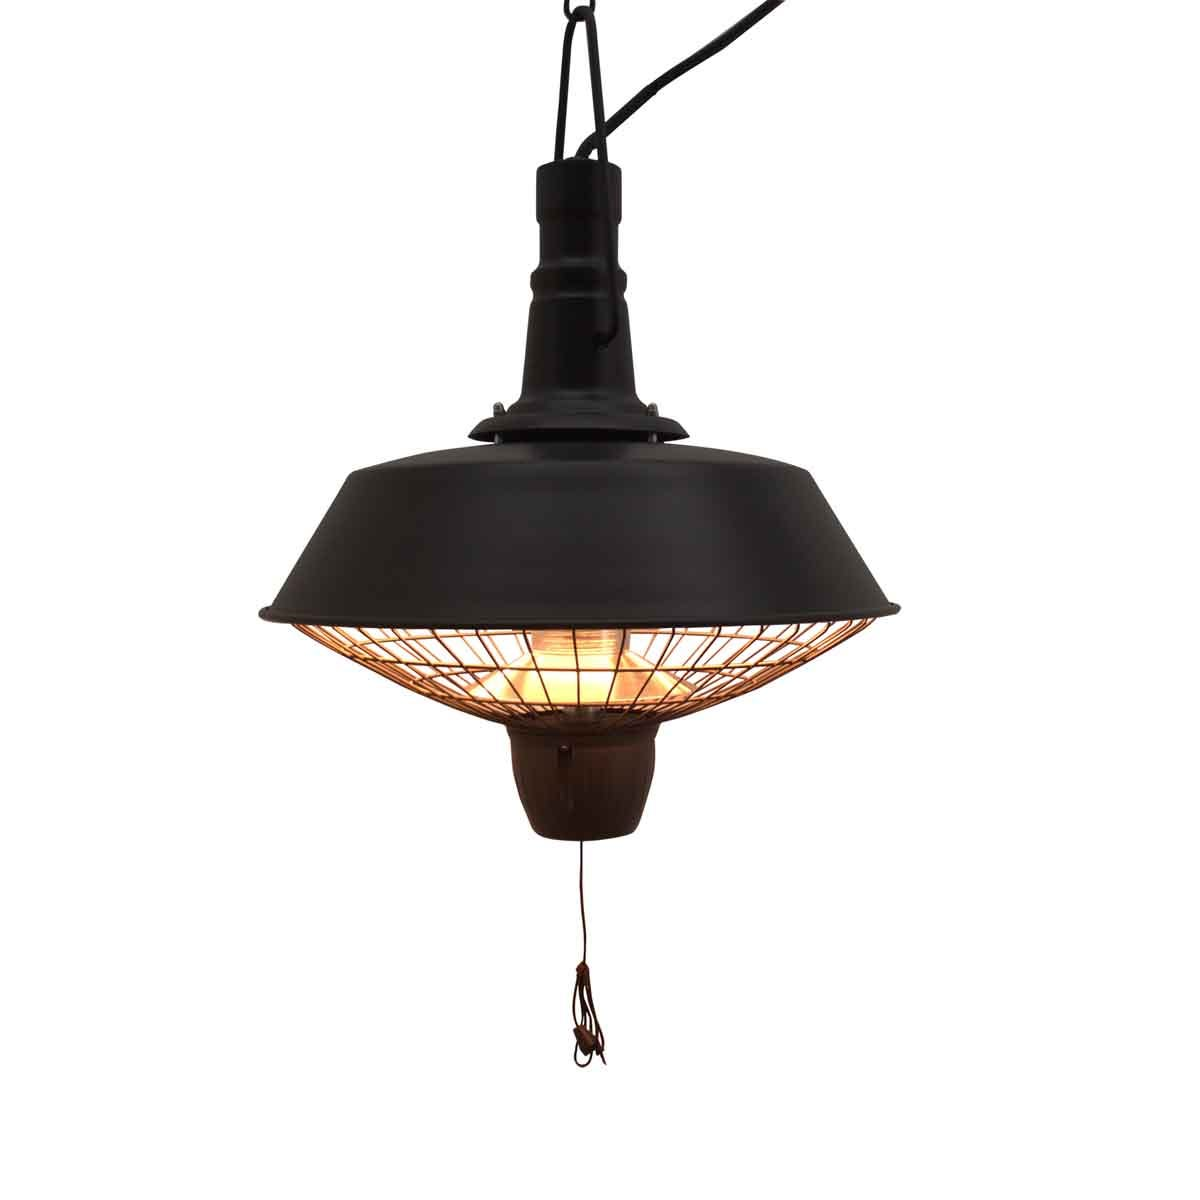 Outsunny 2100W Electric Patio Heater w/ Ceiling Hanging - Black